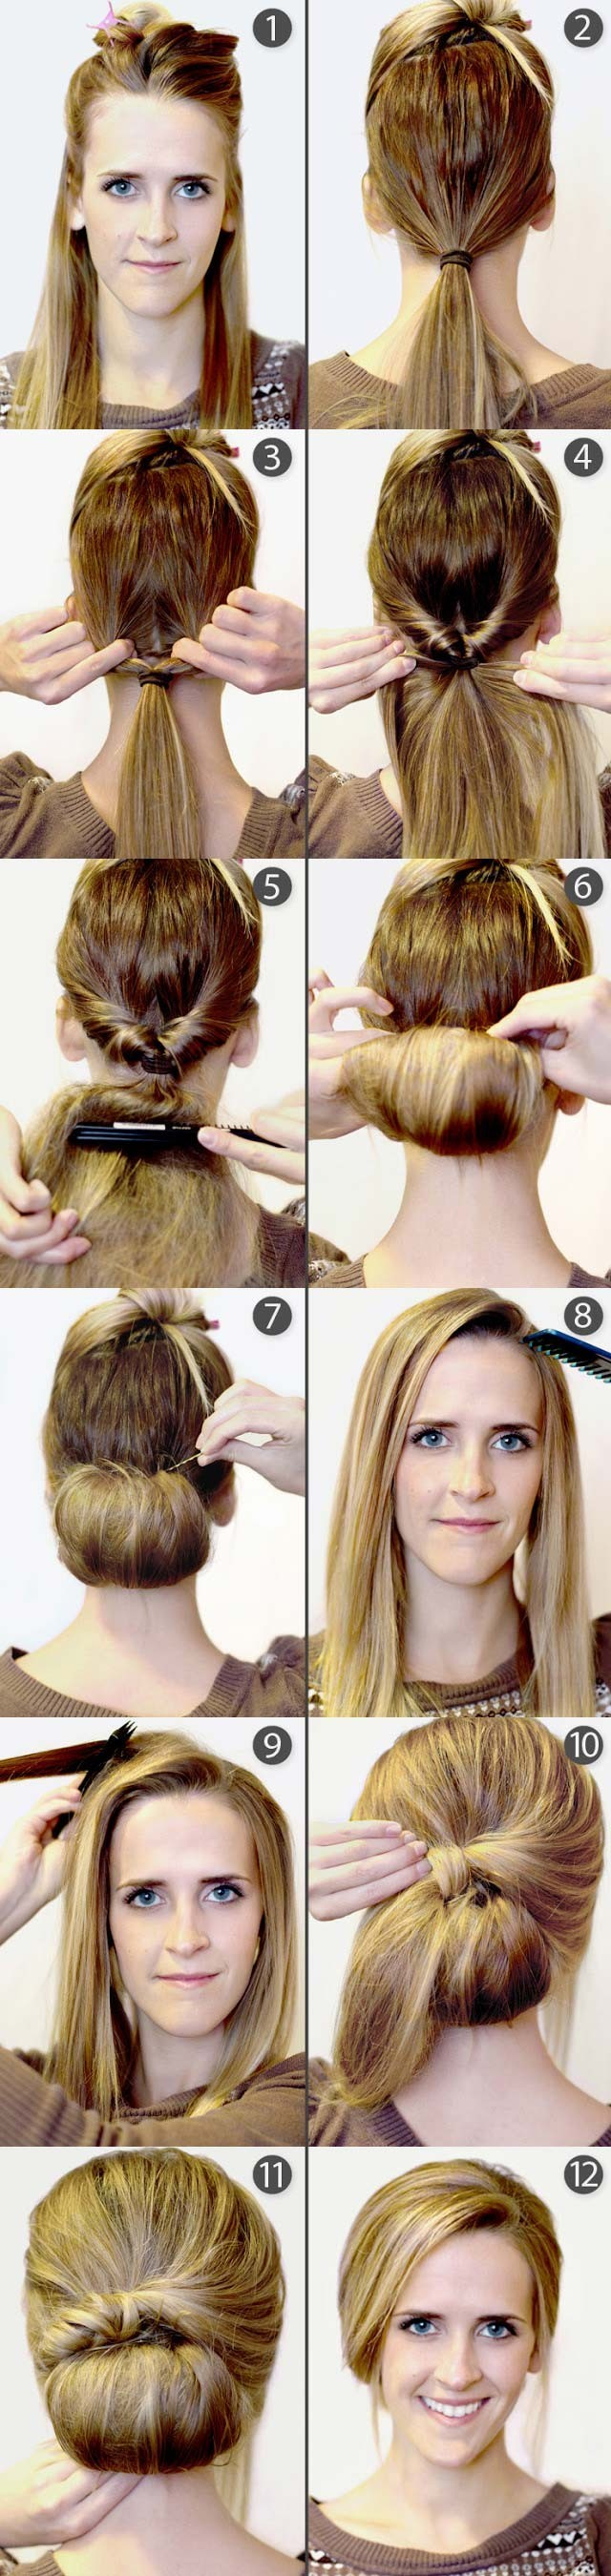 15 cute hairstyles step by step hairstyles for long hair popular retro bouffant bun updos tutorial solutioingenieria Images